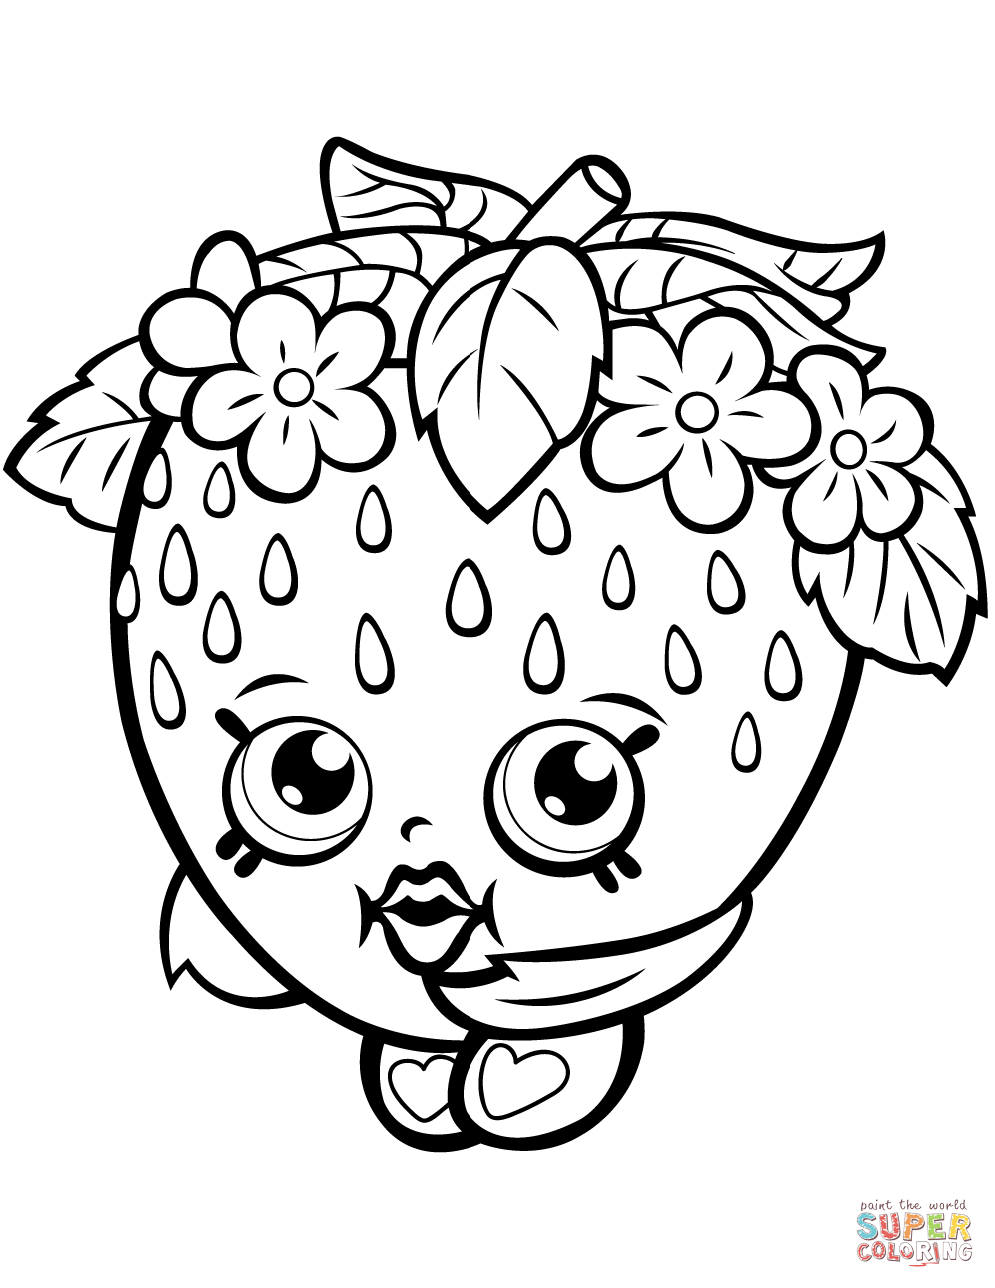 Strawberry Kiss Shopkin Coloring Page | Free Printable Coloring - Shopkins Coloring Pages Free Printable